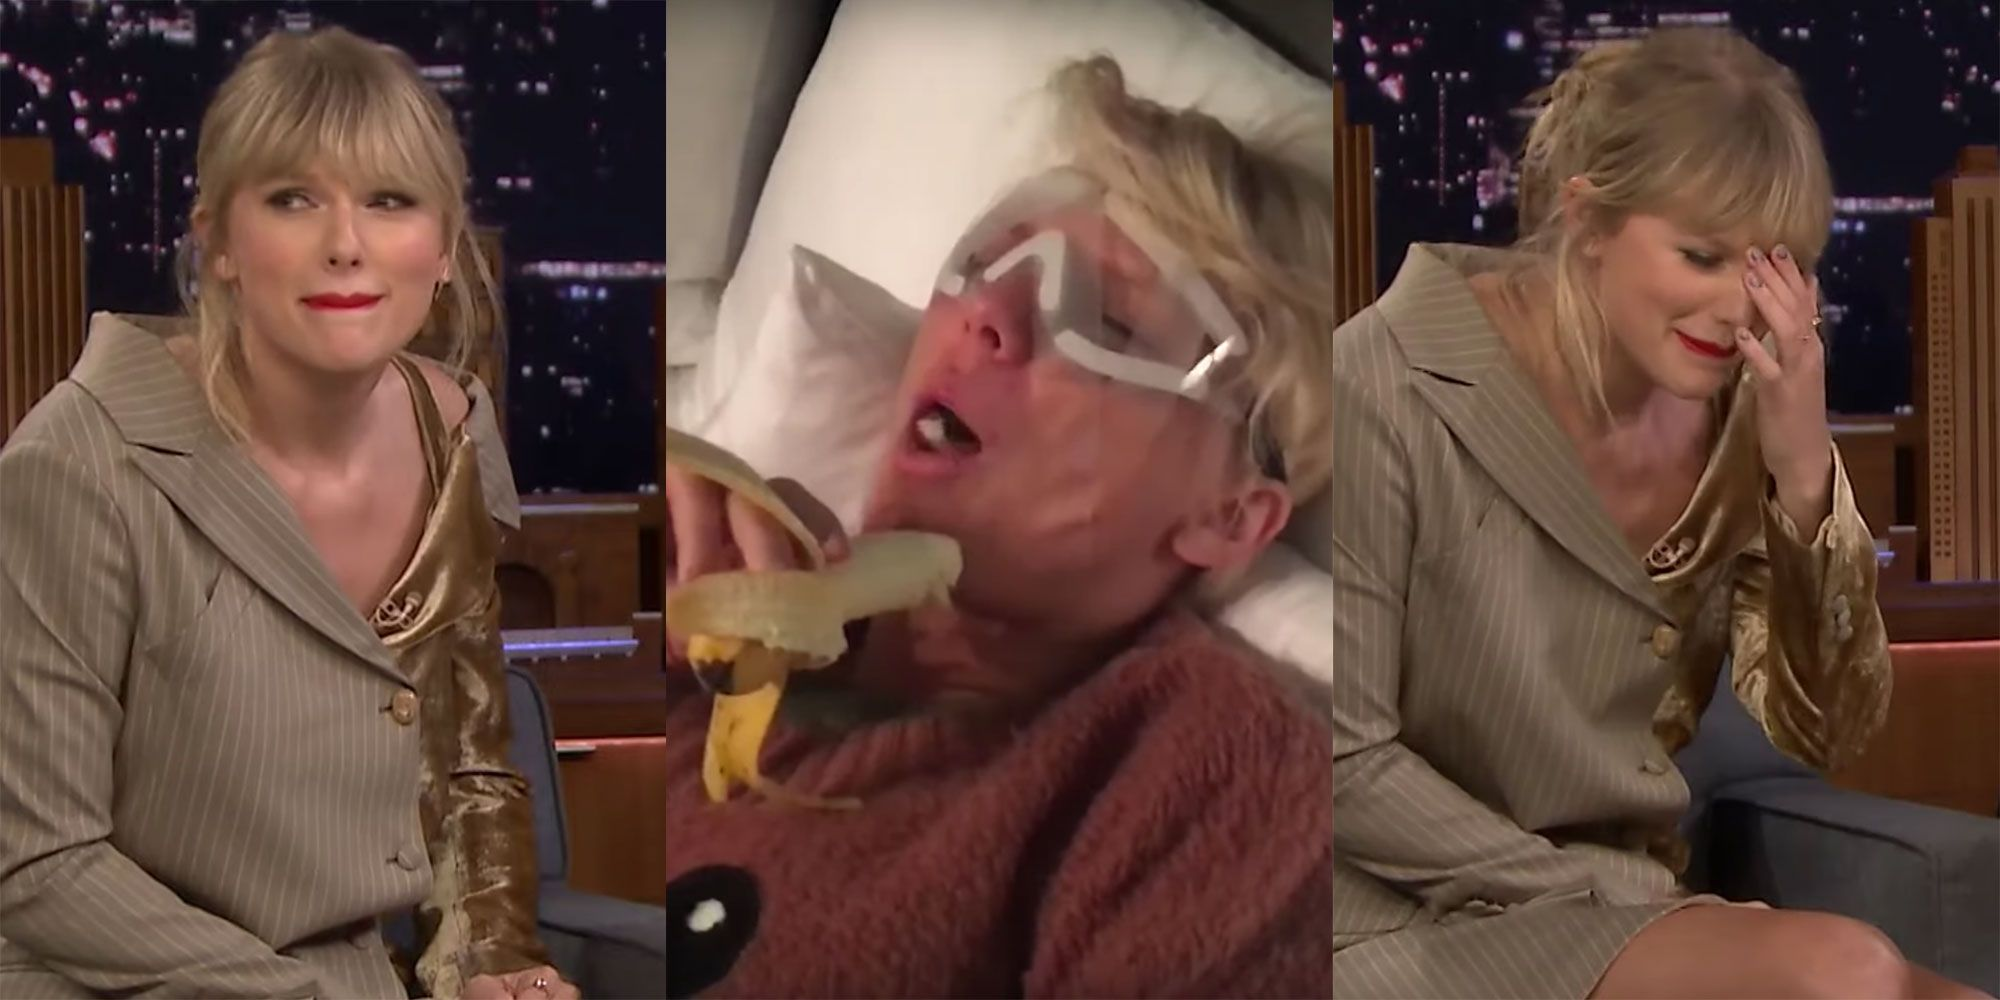 Watch Taylor Swift Lose It When Footage of Her Loopy After Lasik Surgery Is Aired